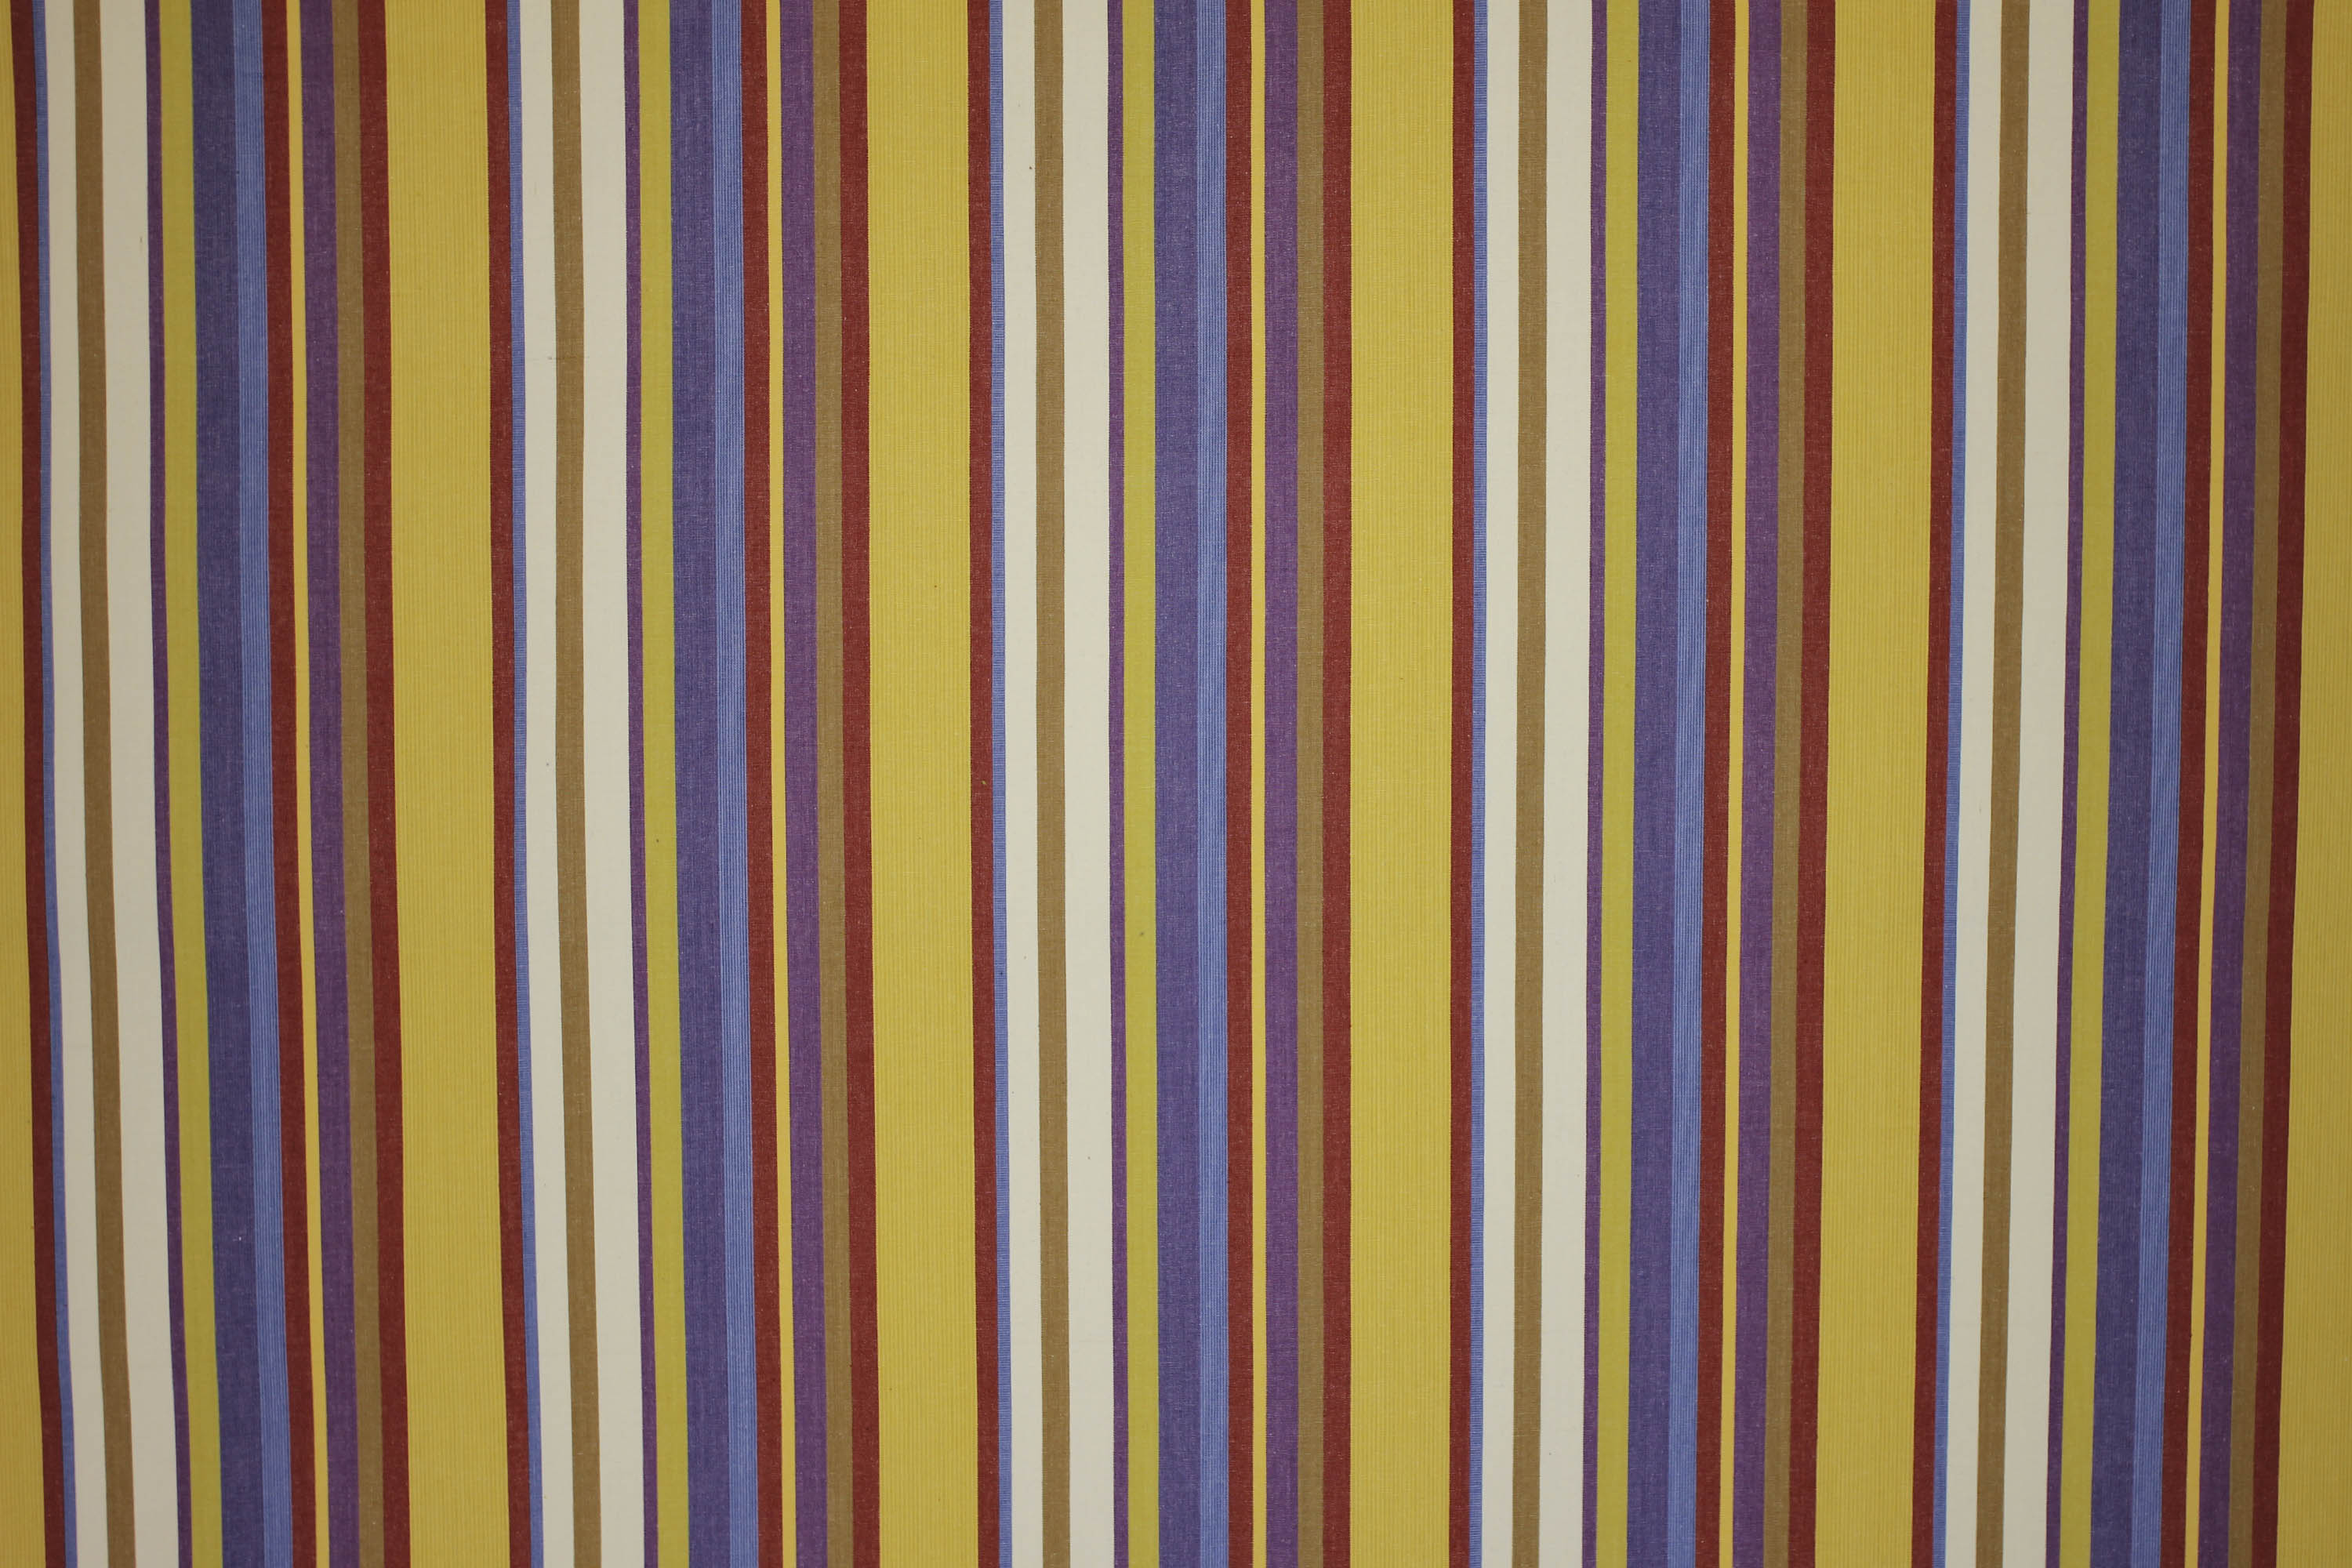 Horseshoe Apricot Striped Fabric